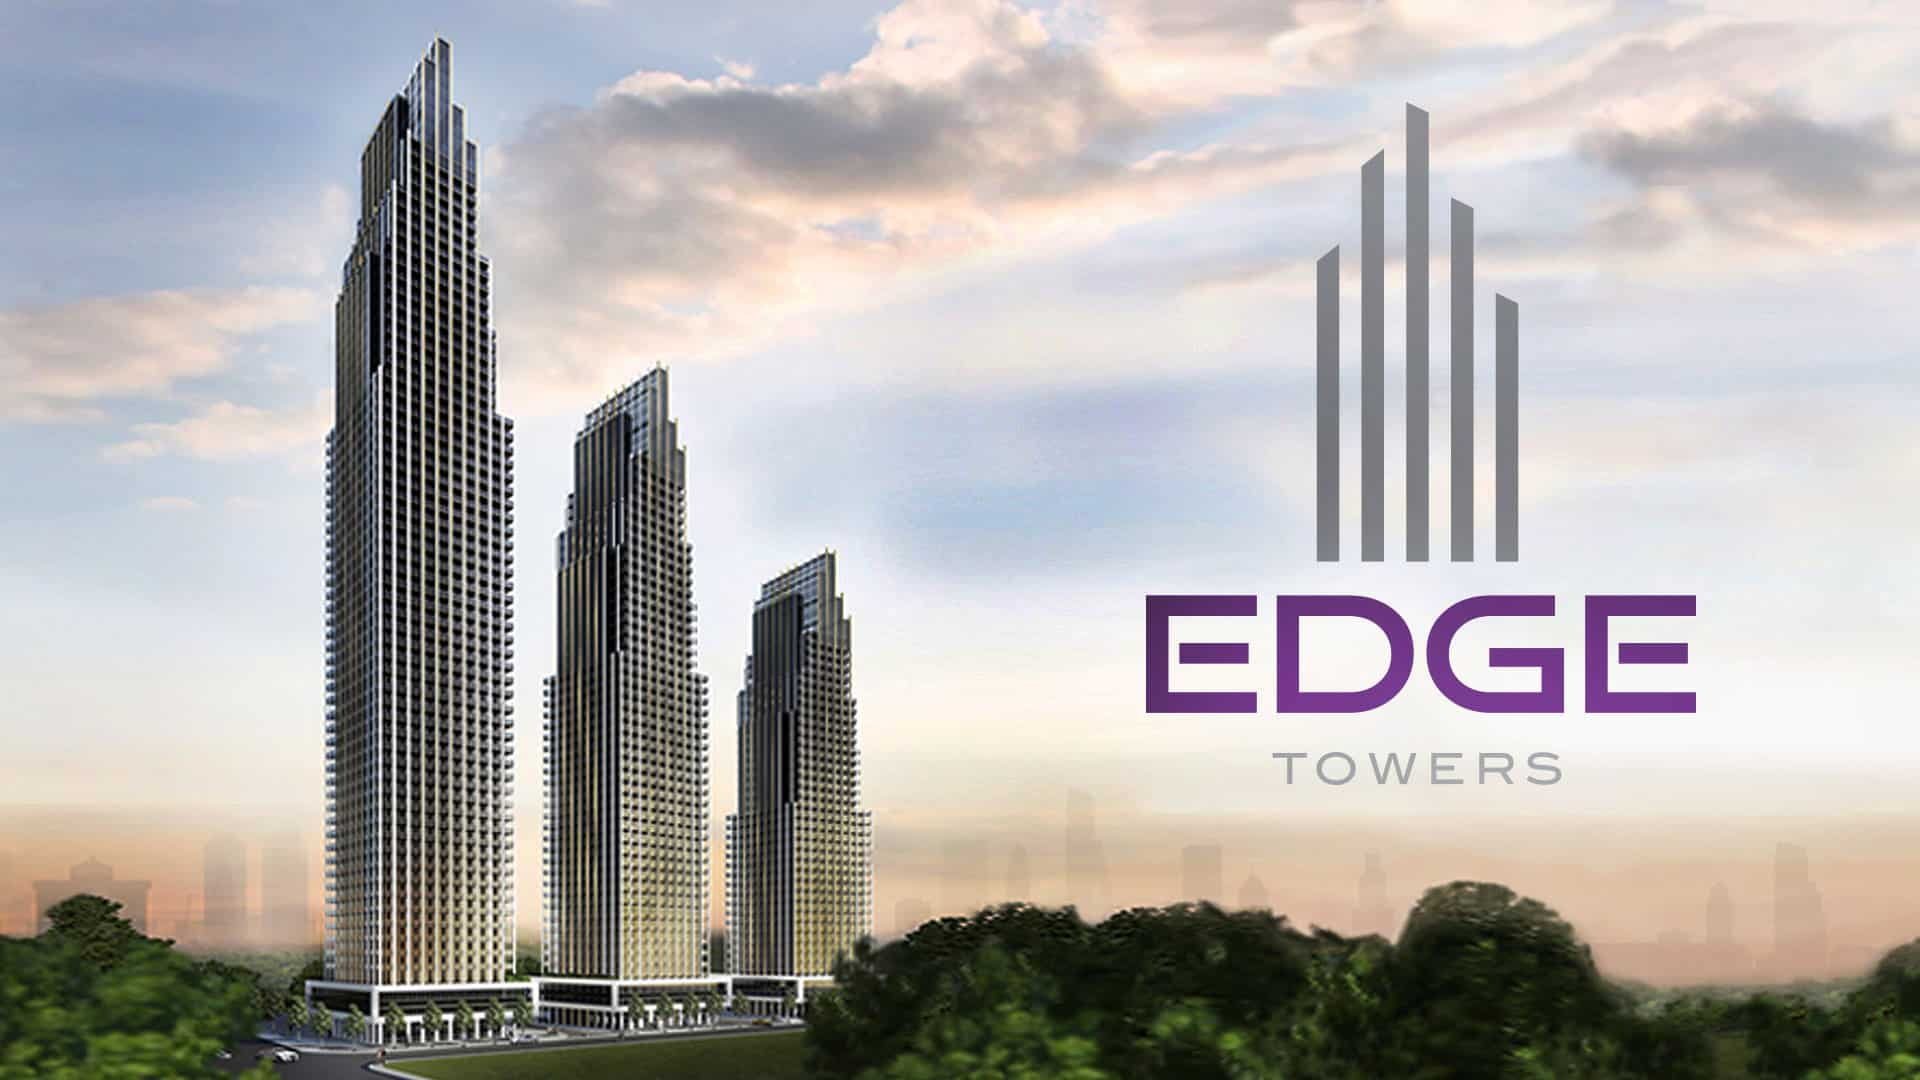 3 Condo Projects Coming Up In Mississauga In 2017 3 Condo Projects Coming Up In Mississauga In 2017 edge condos mississauga solmar condos elm dr mississauga edge towers mississauga squareonelife